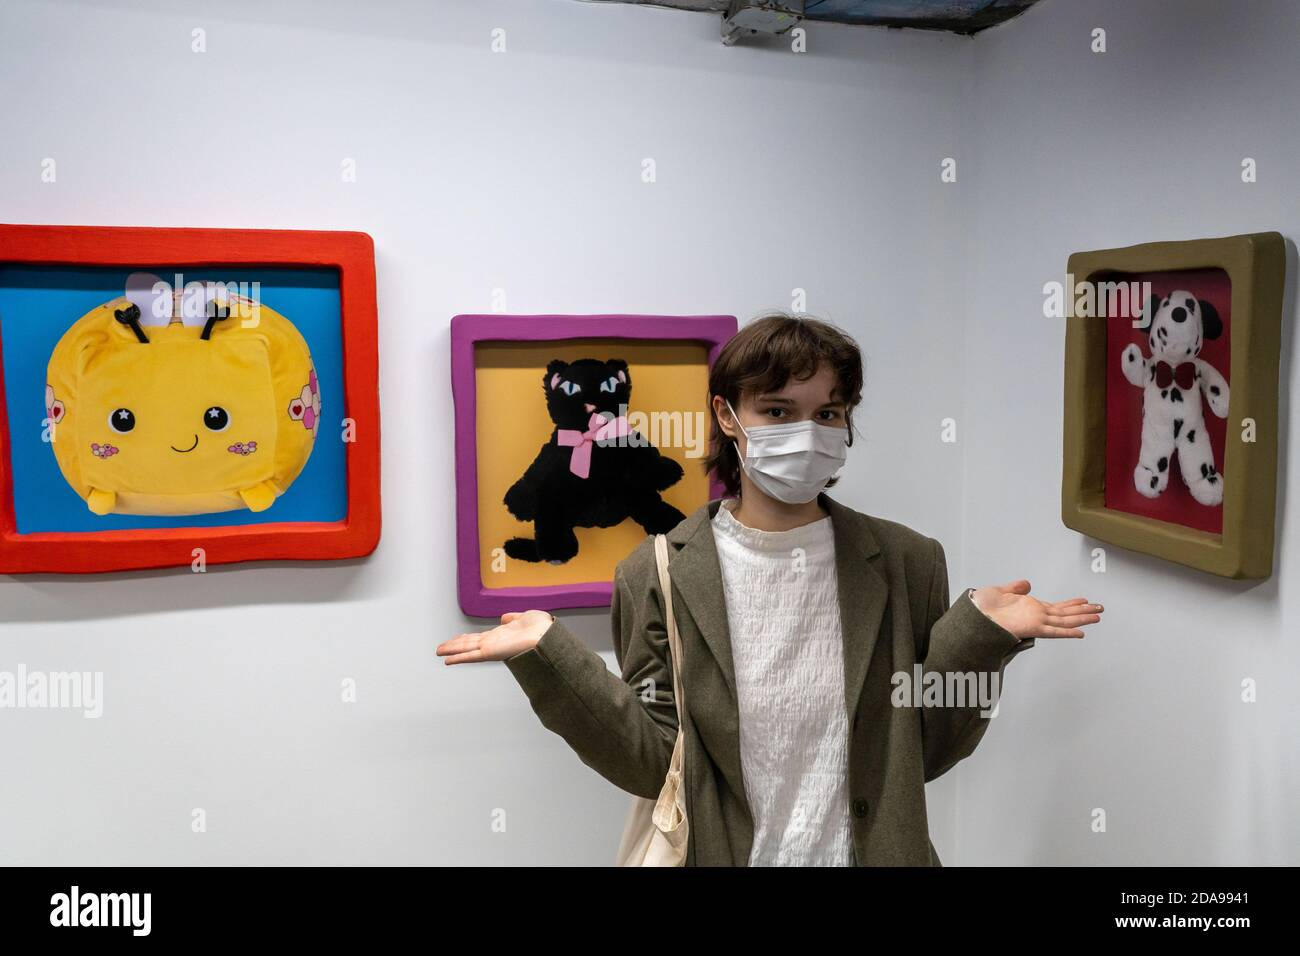 """NEW YORK, NY - NOVEMBER 11, 2020: Artist Stefany Lazar attends her show """"Stuffed Animals and Princess Peach"""" at Love gallery in New York City. Stock Photo"""